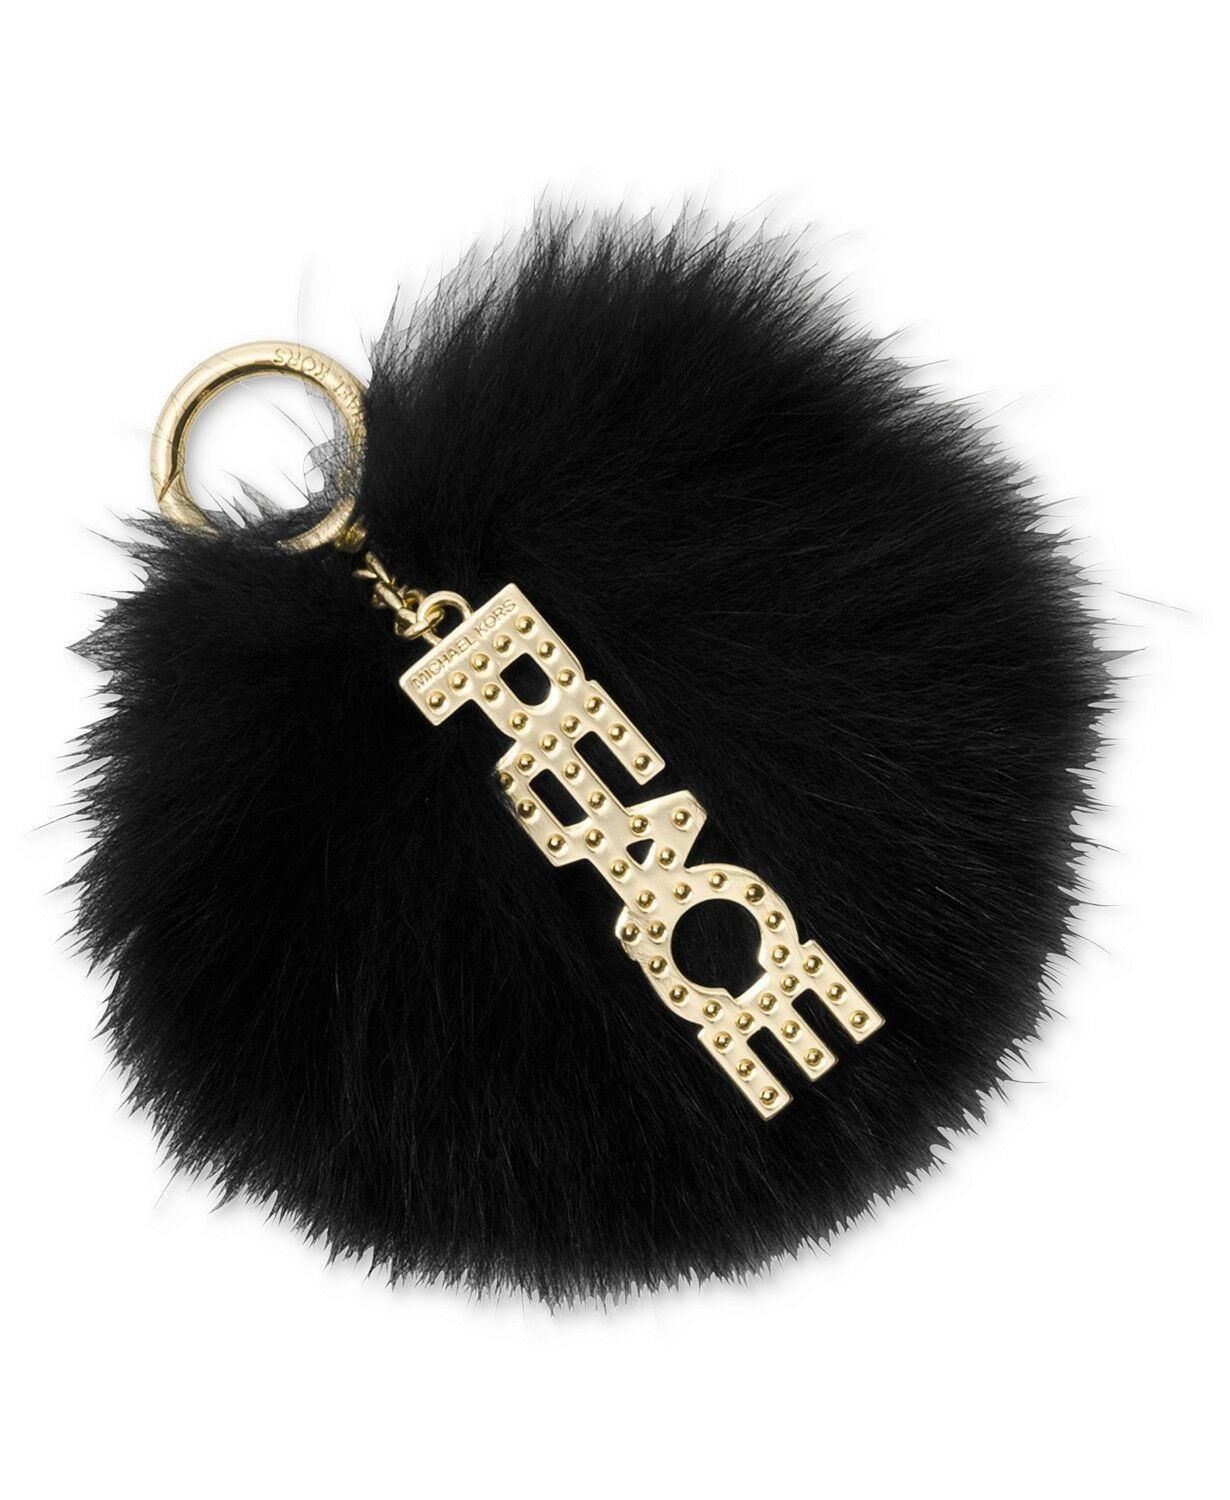 8e65b638df827 Michael Kors Peace Fox Fur Pom Pom Bag Charm and 50 similar items